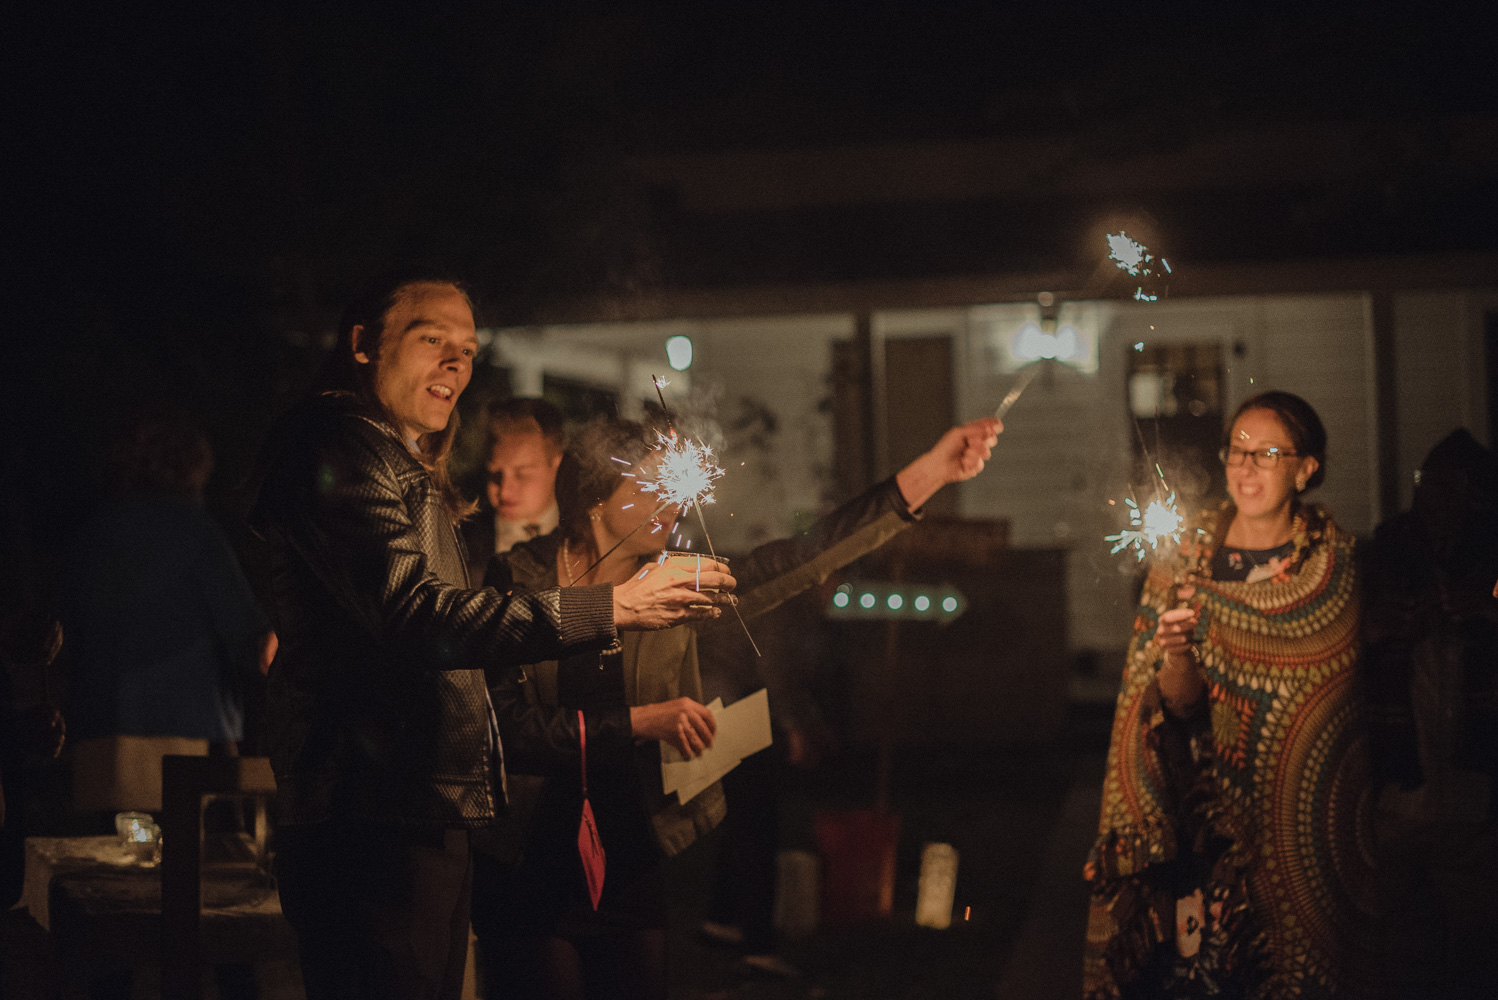 Nevada City wedding guests turning on their sparklers photo